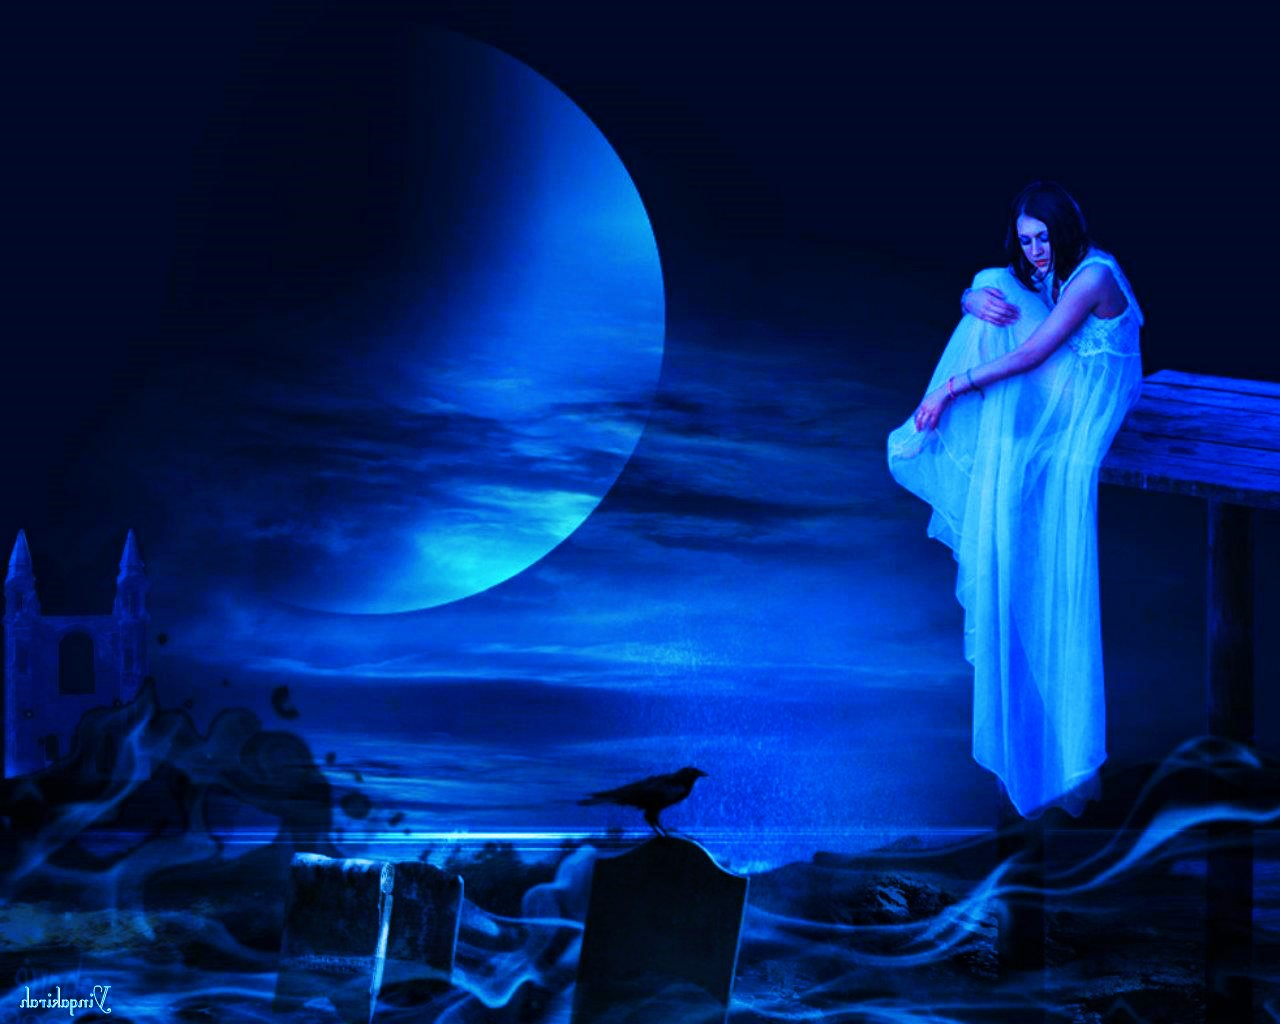 blue hdwallpapers cat dark_evening_moon_grave_fantasy_woman_night_hd-wallpaper-1757293